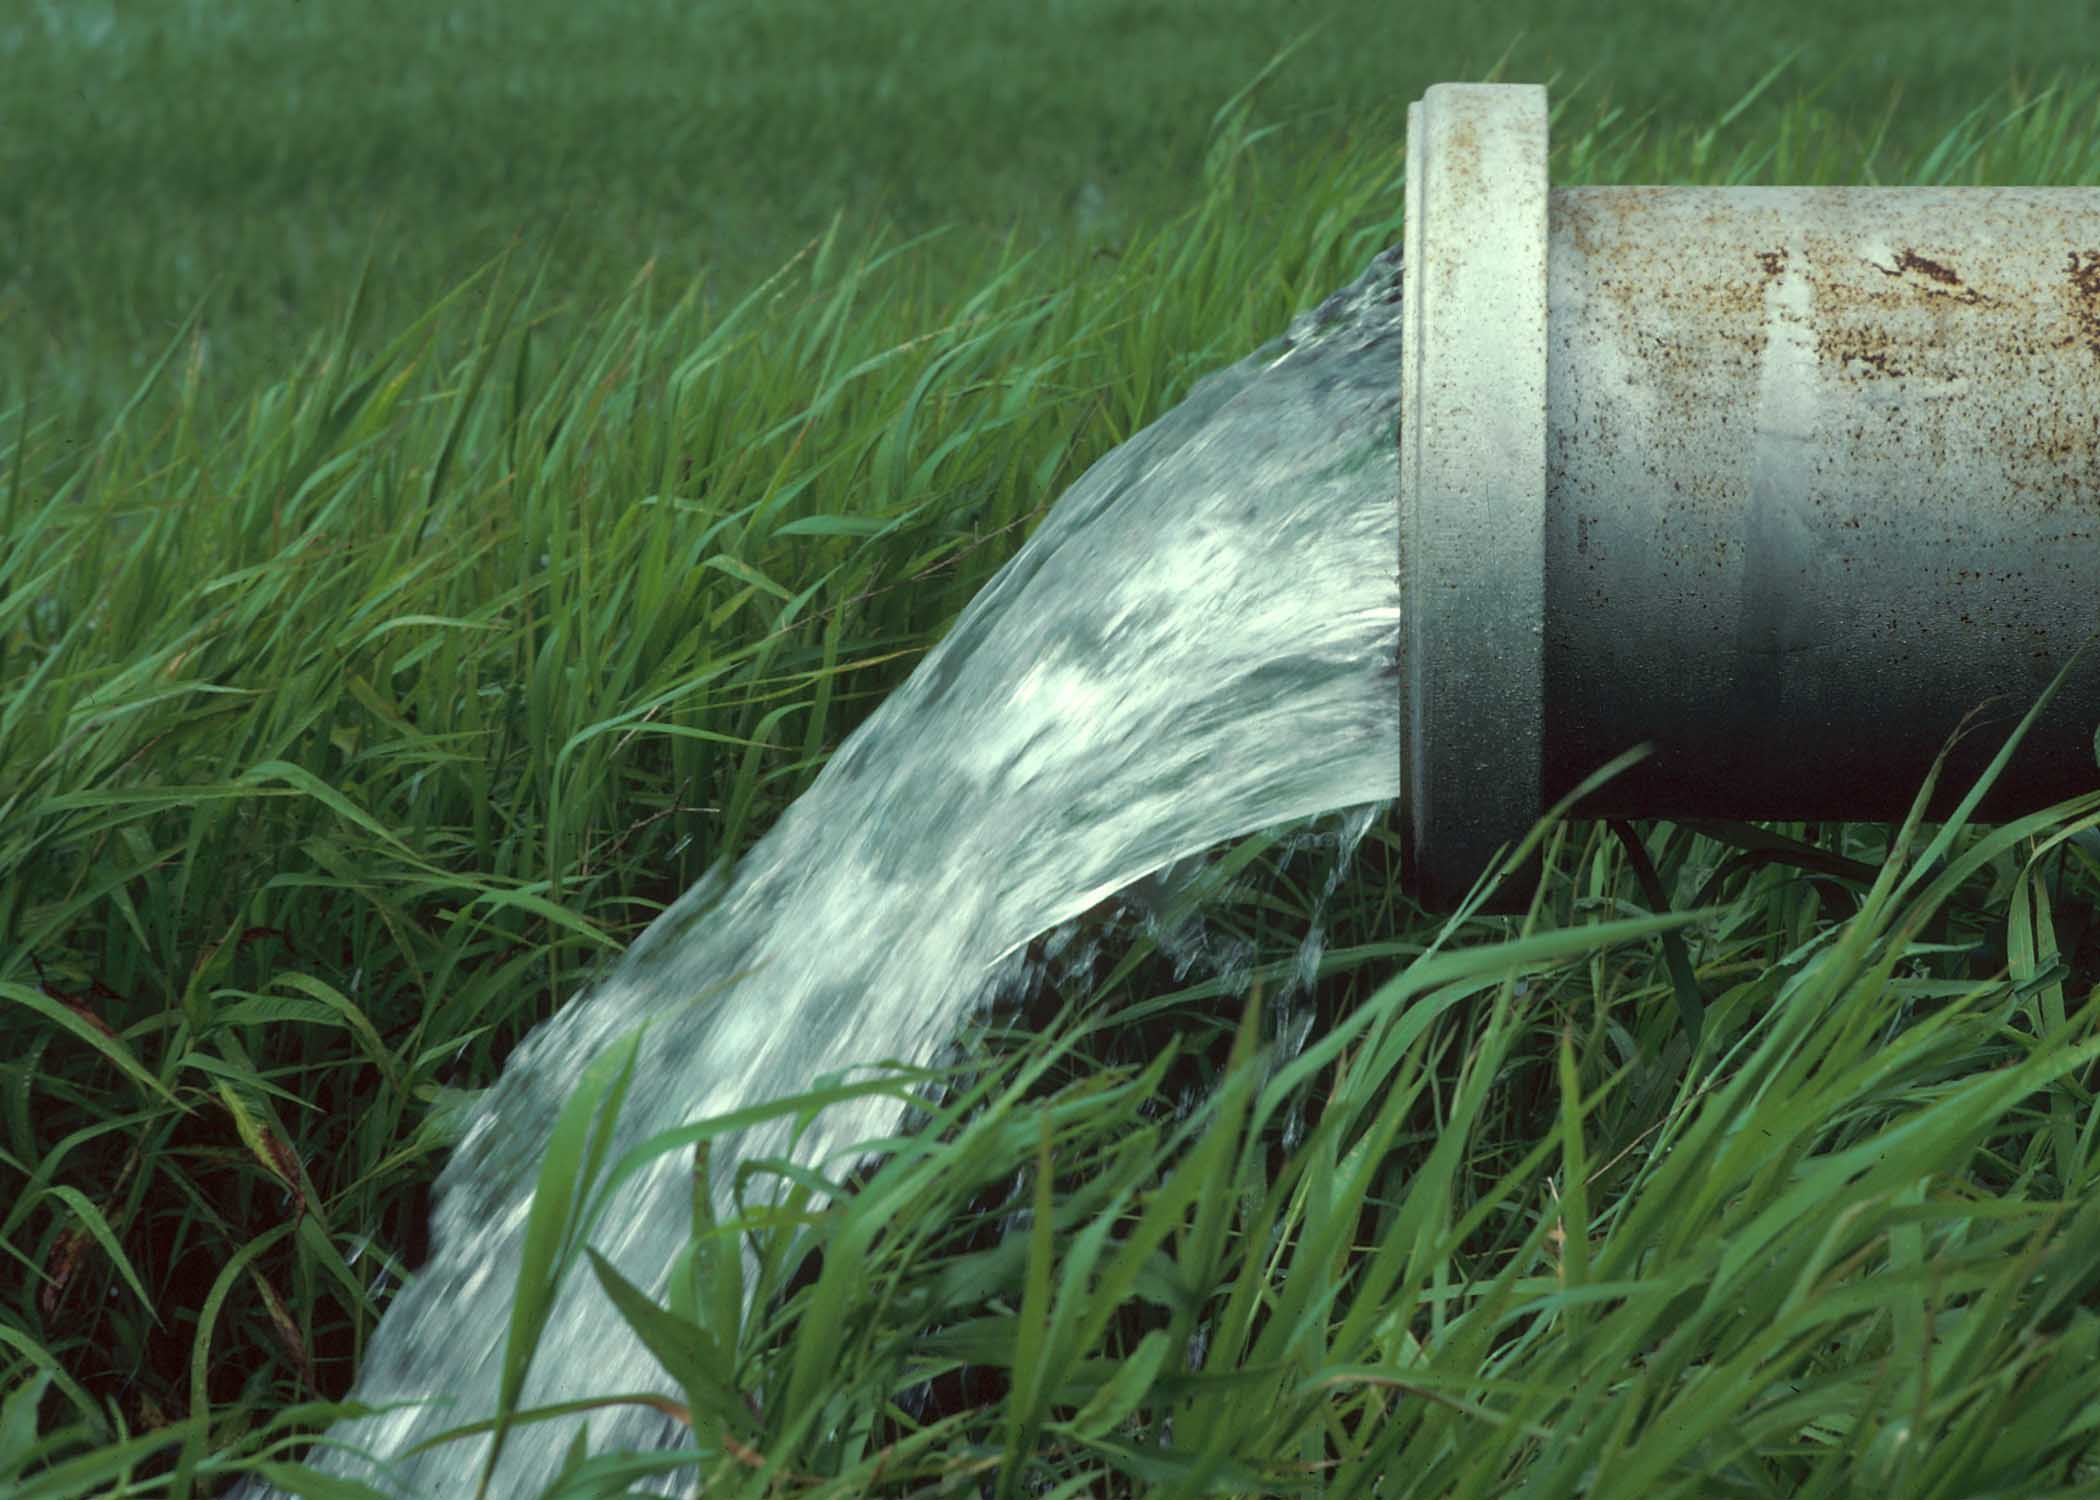 groundwater depletion could be significant source of atmospheric